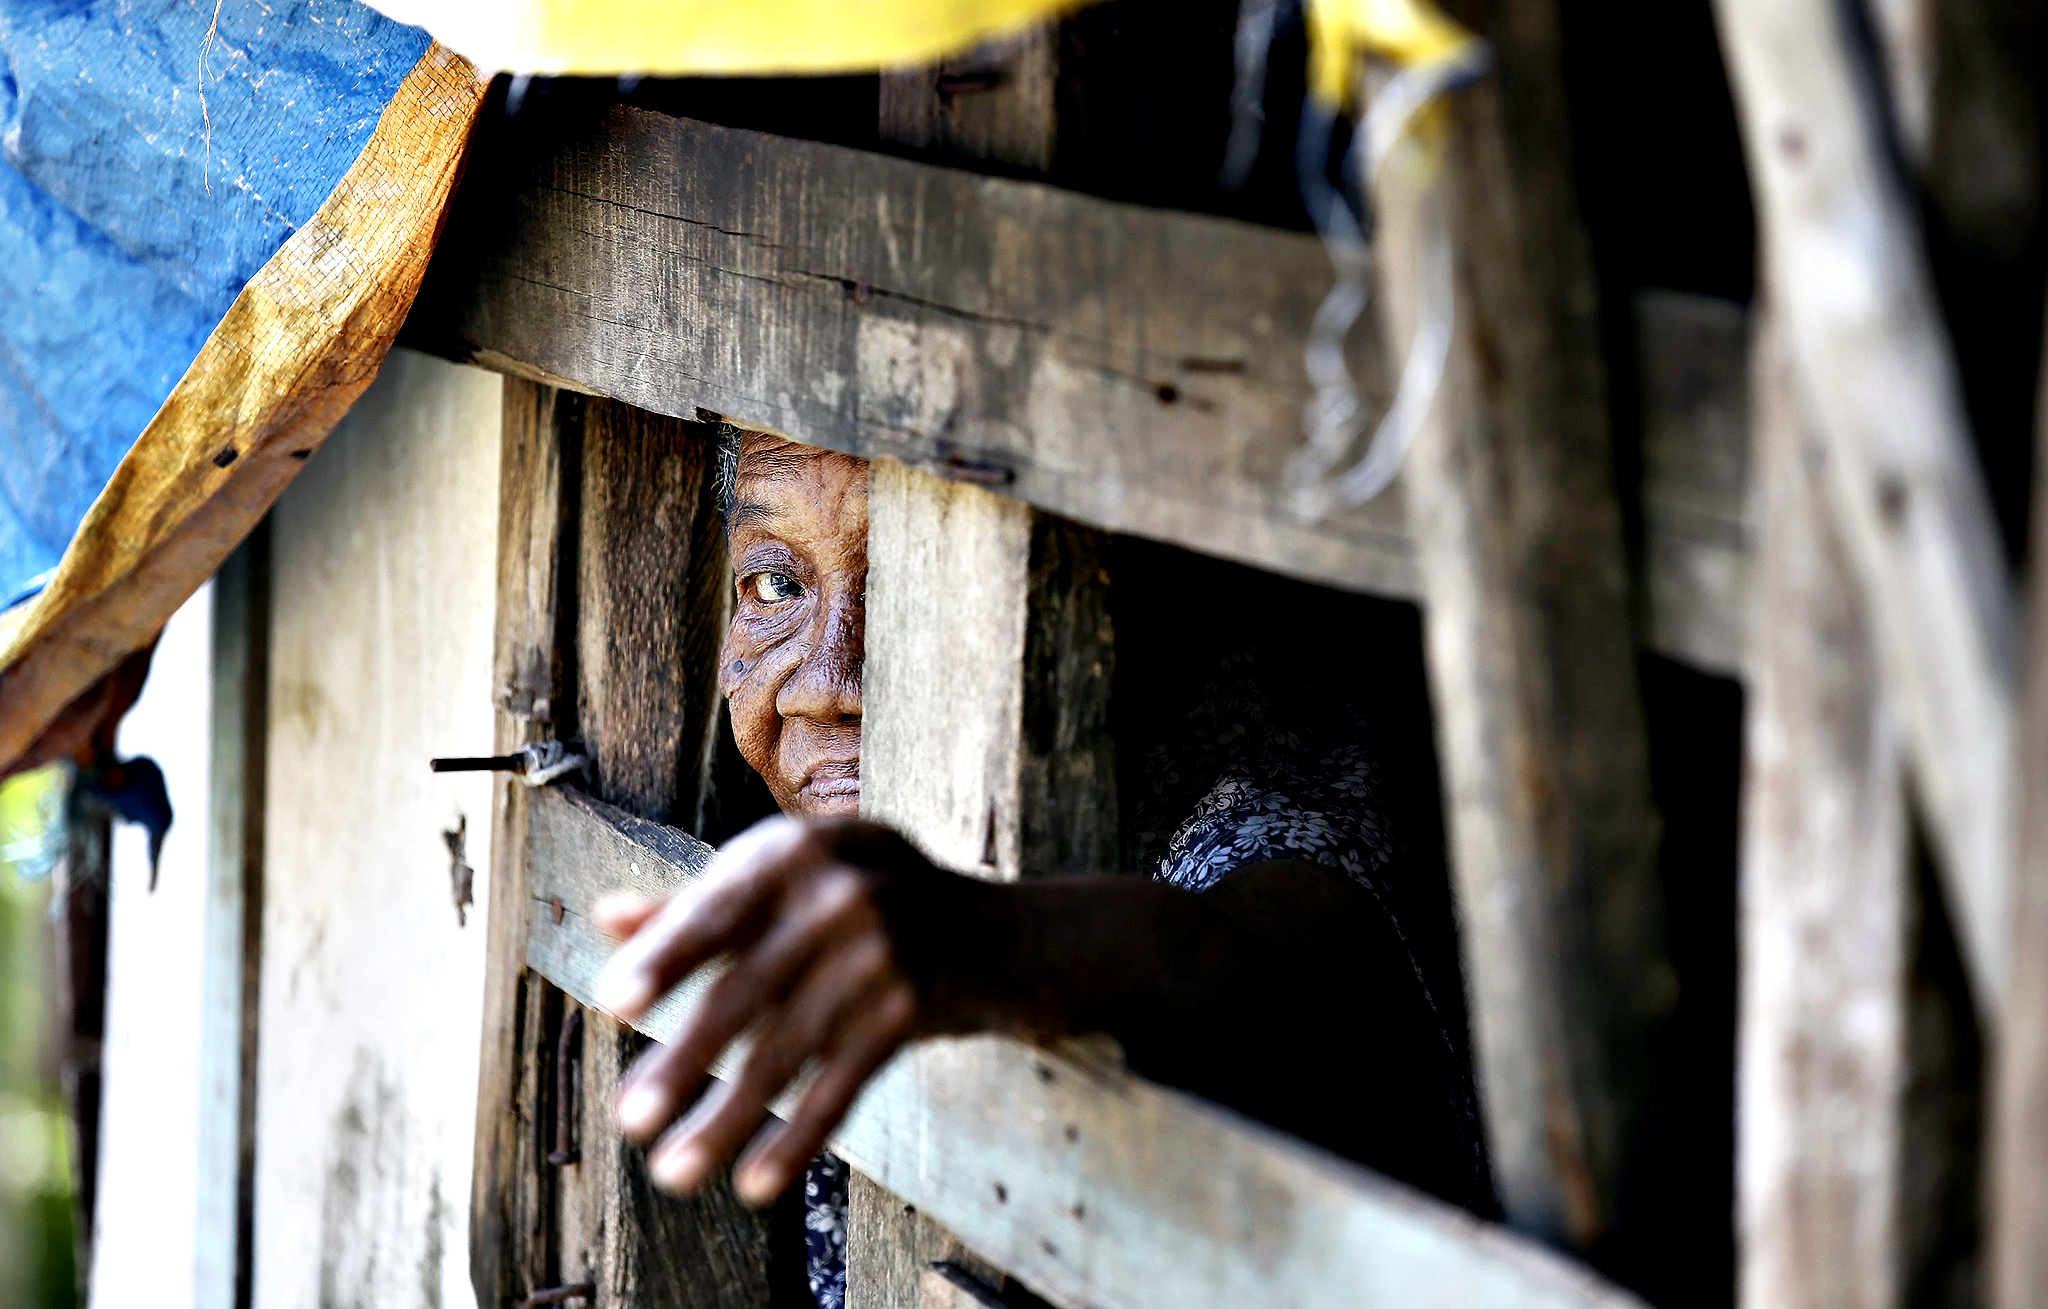 Maring Cahidan, 92, suspected of having a mental illness, sits inside a makeshift cage where she spent the past three months, in Tacloban City, which was damaged by the 2013 Typhoon Haiyan in Leyte province, Philippines, 05 November 2014. One year after Haiyan left nearly 8,000 people dead or missing in the eastern Philippines, many survivors are still suffering from emotional distress despite being busy with physically rebuilding their lives. Over four million people were displaced when Haiyan destroyed or damaged almost everything in its path as it swept through the eastern and central Philippines on 08 November 2013. At least one million of these survivors were residents of coastal communities devastated by tidal surges as high as 10 meters, and are being prioritized for relocation.